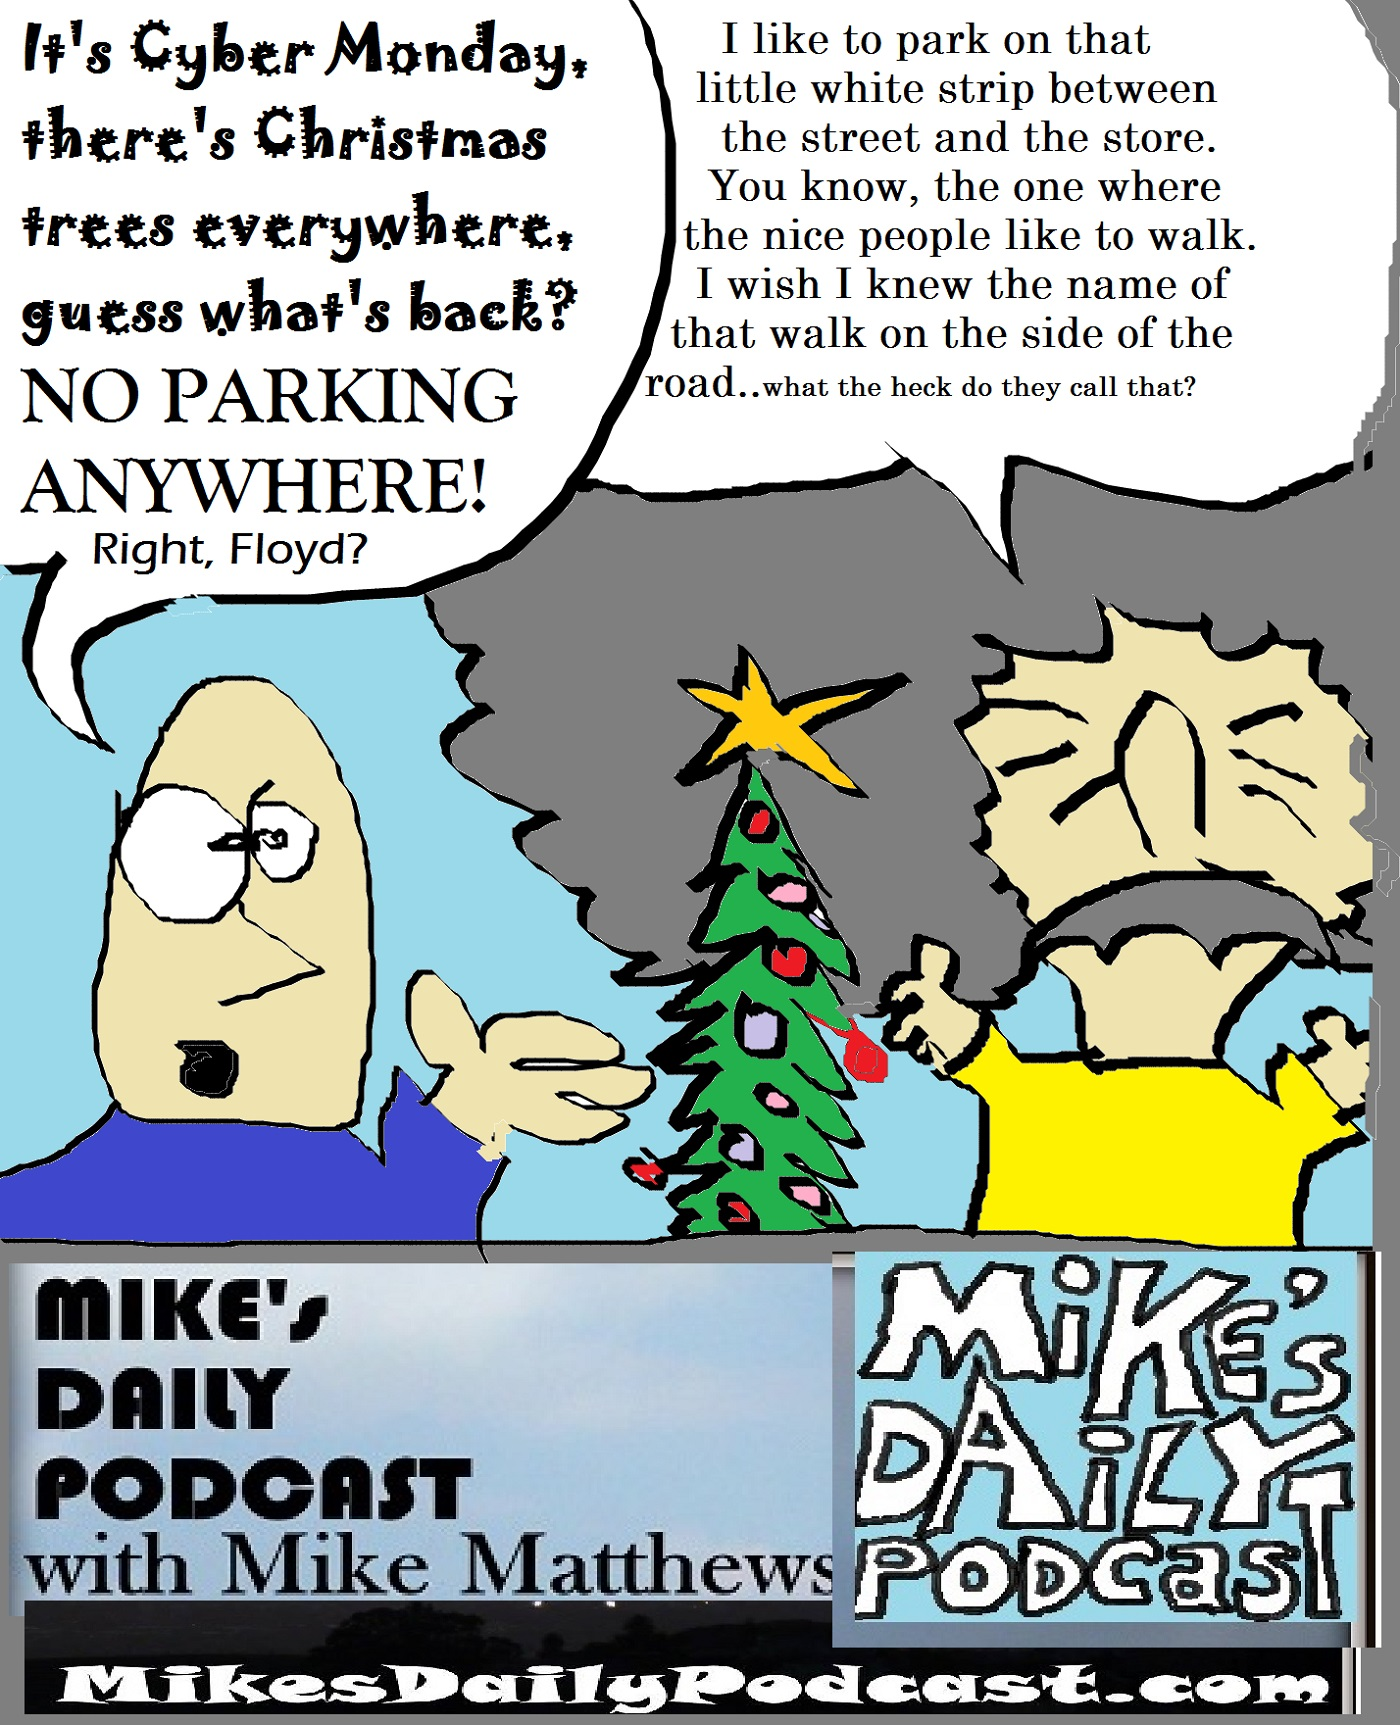 mikes-daily-podcast-1226-christmas-holidays-parking